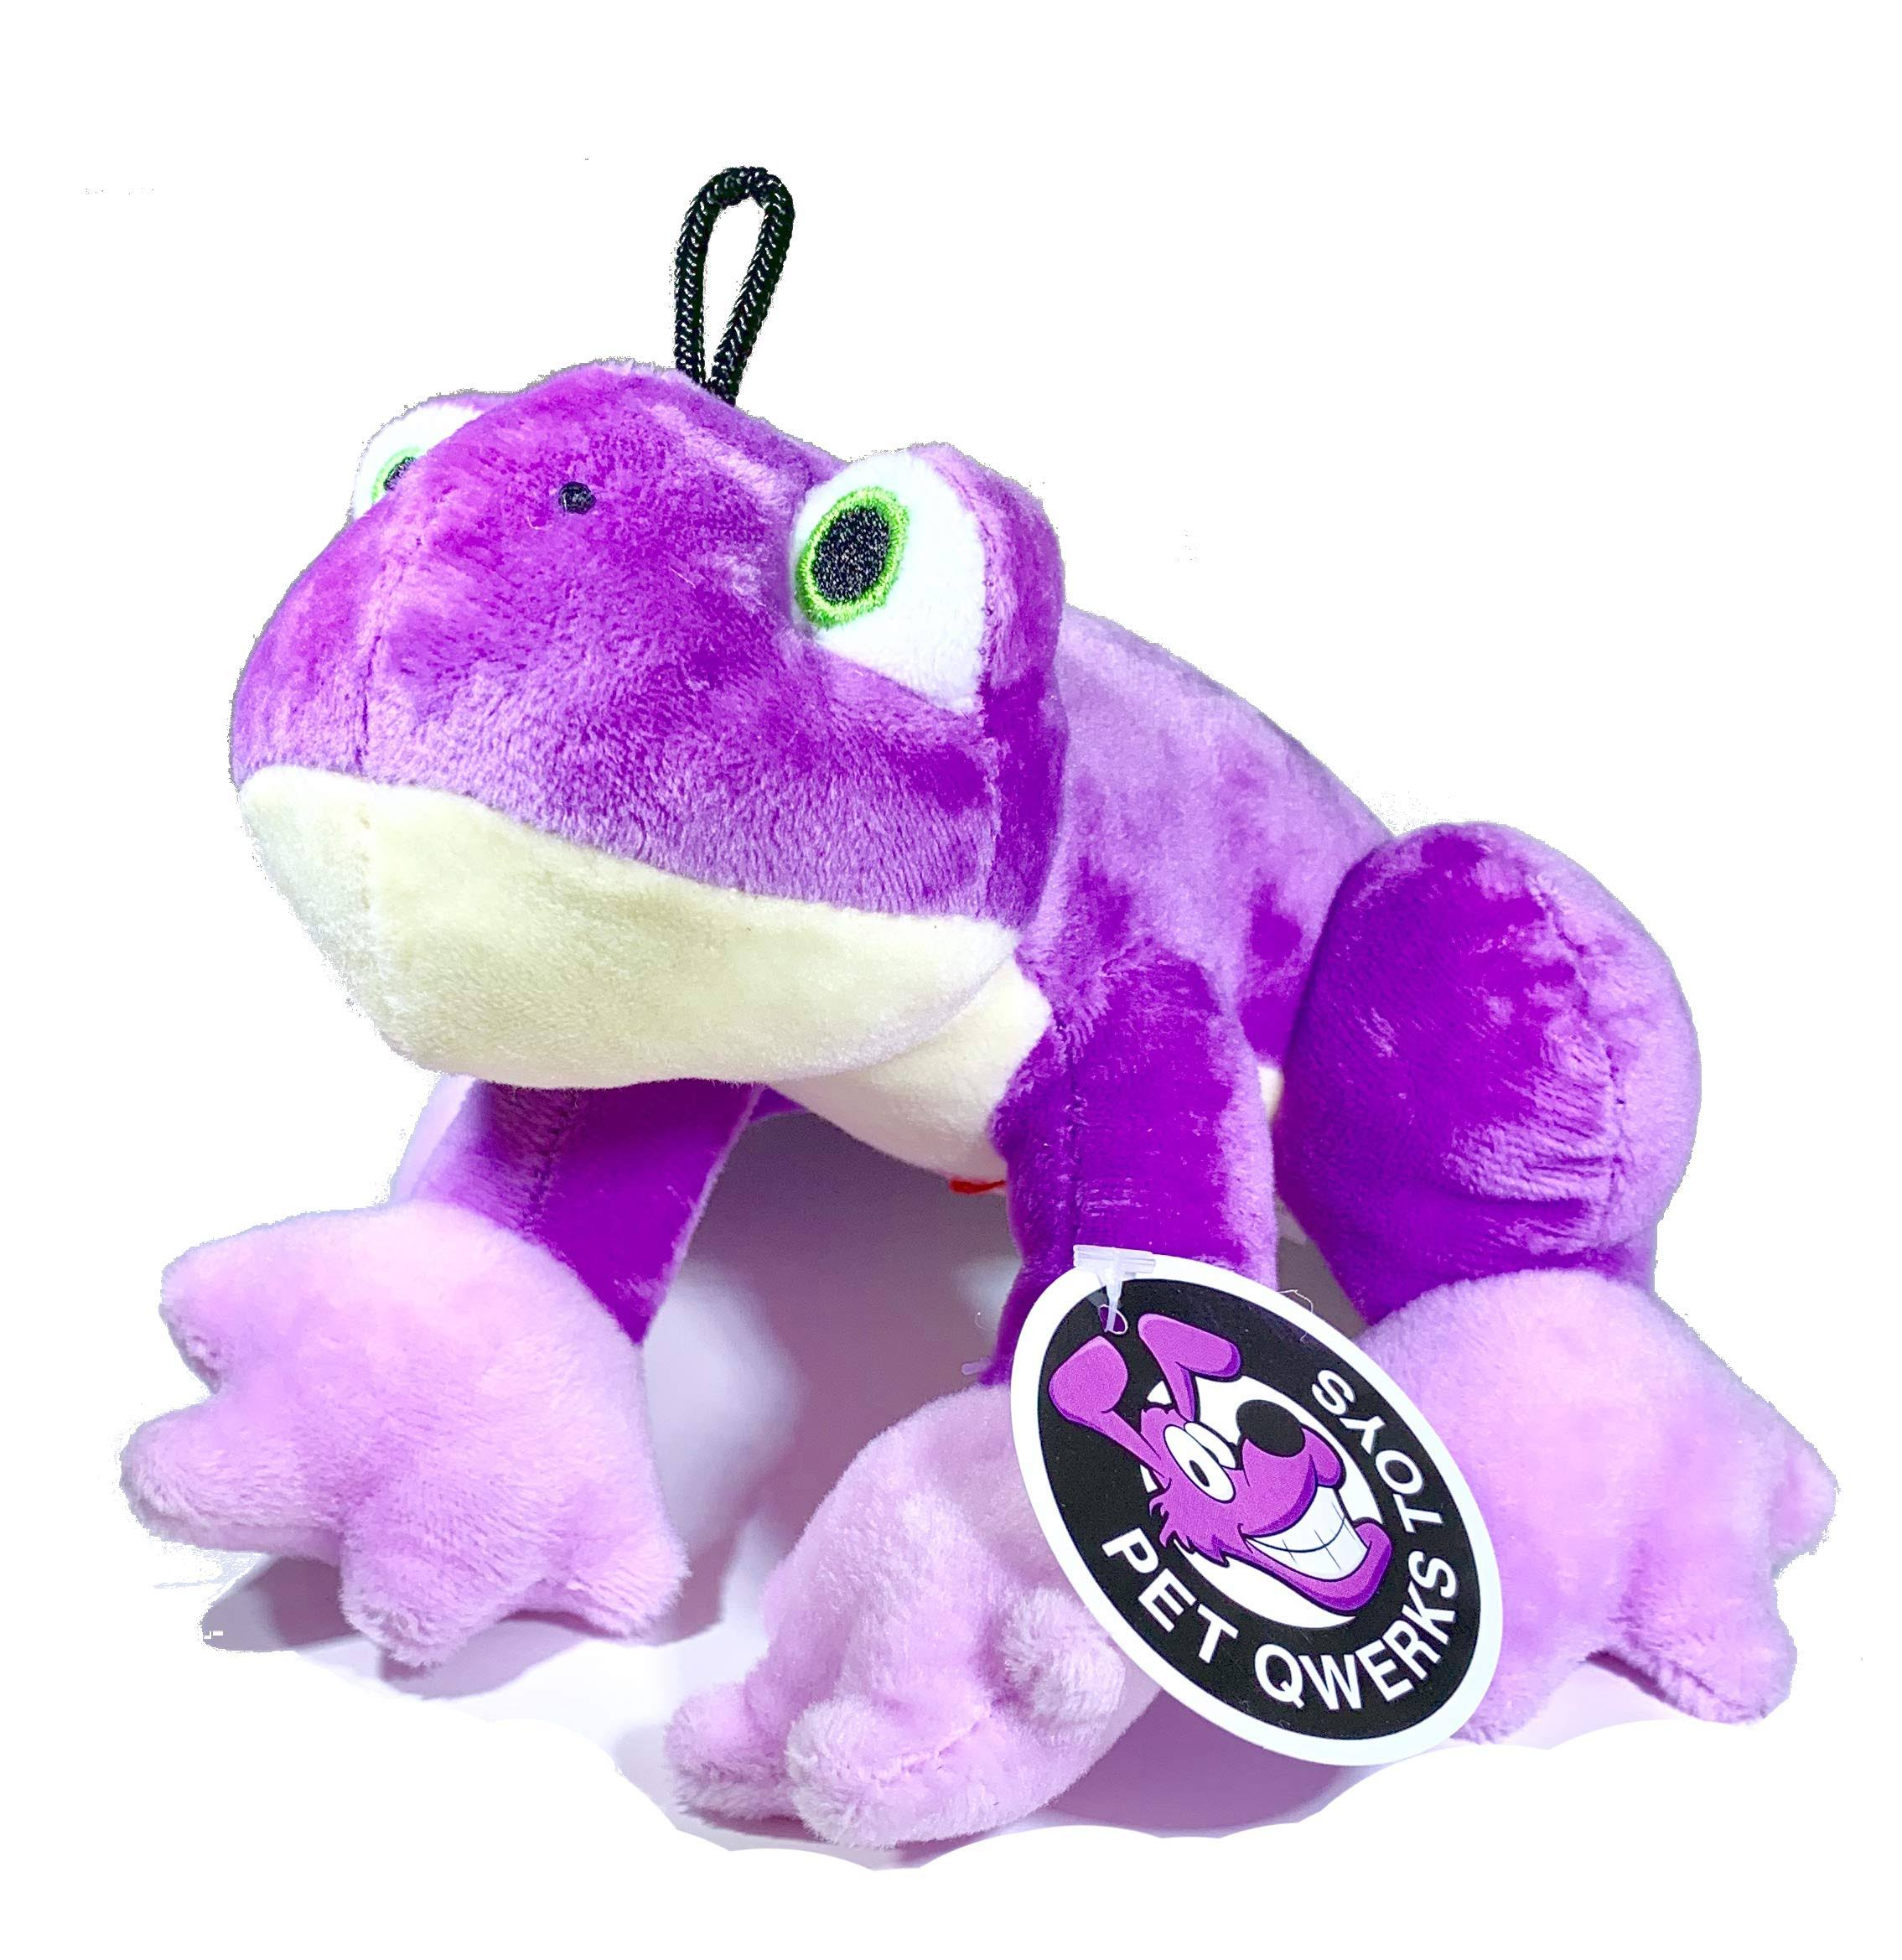 Pet Qwerks Frog Sound Plush Dog Toy, Purple, 7-in